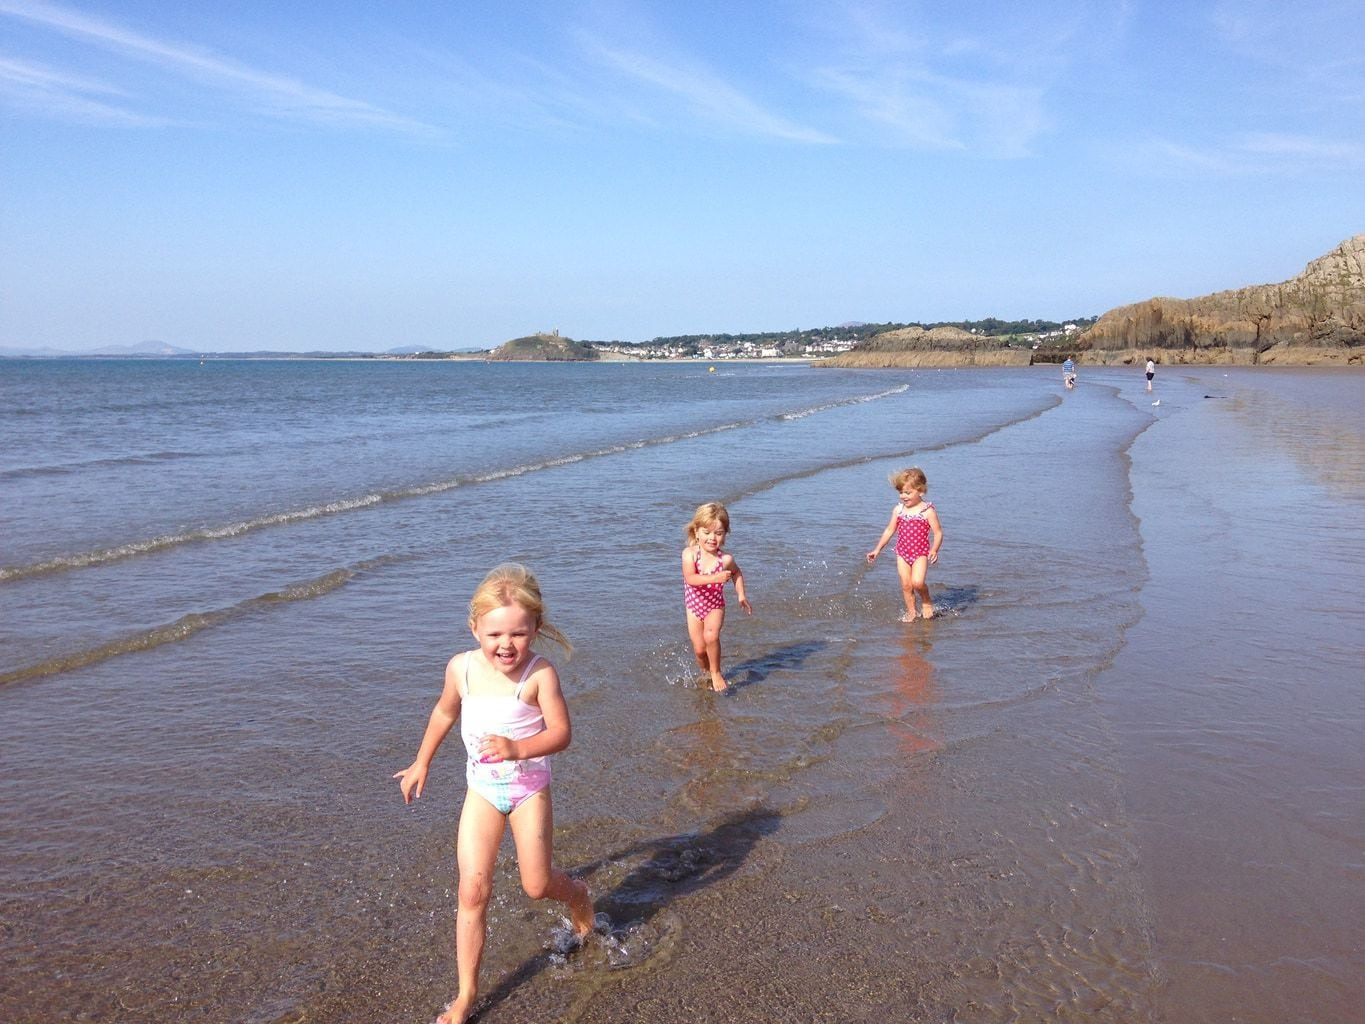 Wales If you are thinking of traveling to Abersoch or Pwhelli this summer, here are 5 Free Days Out for Kids Near Abersoch to consider.